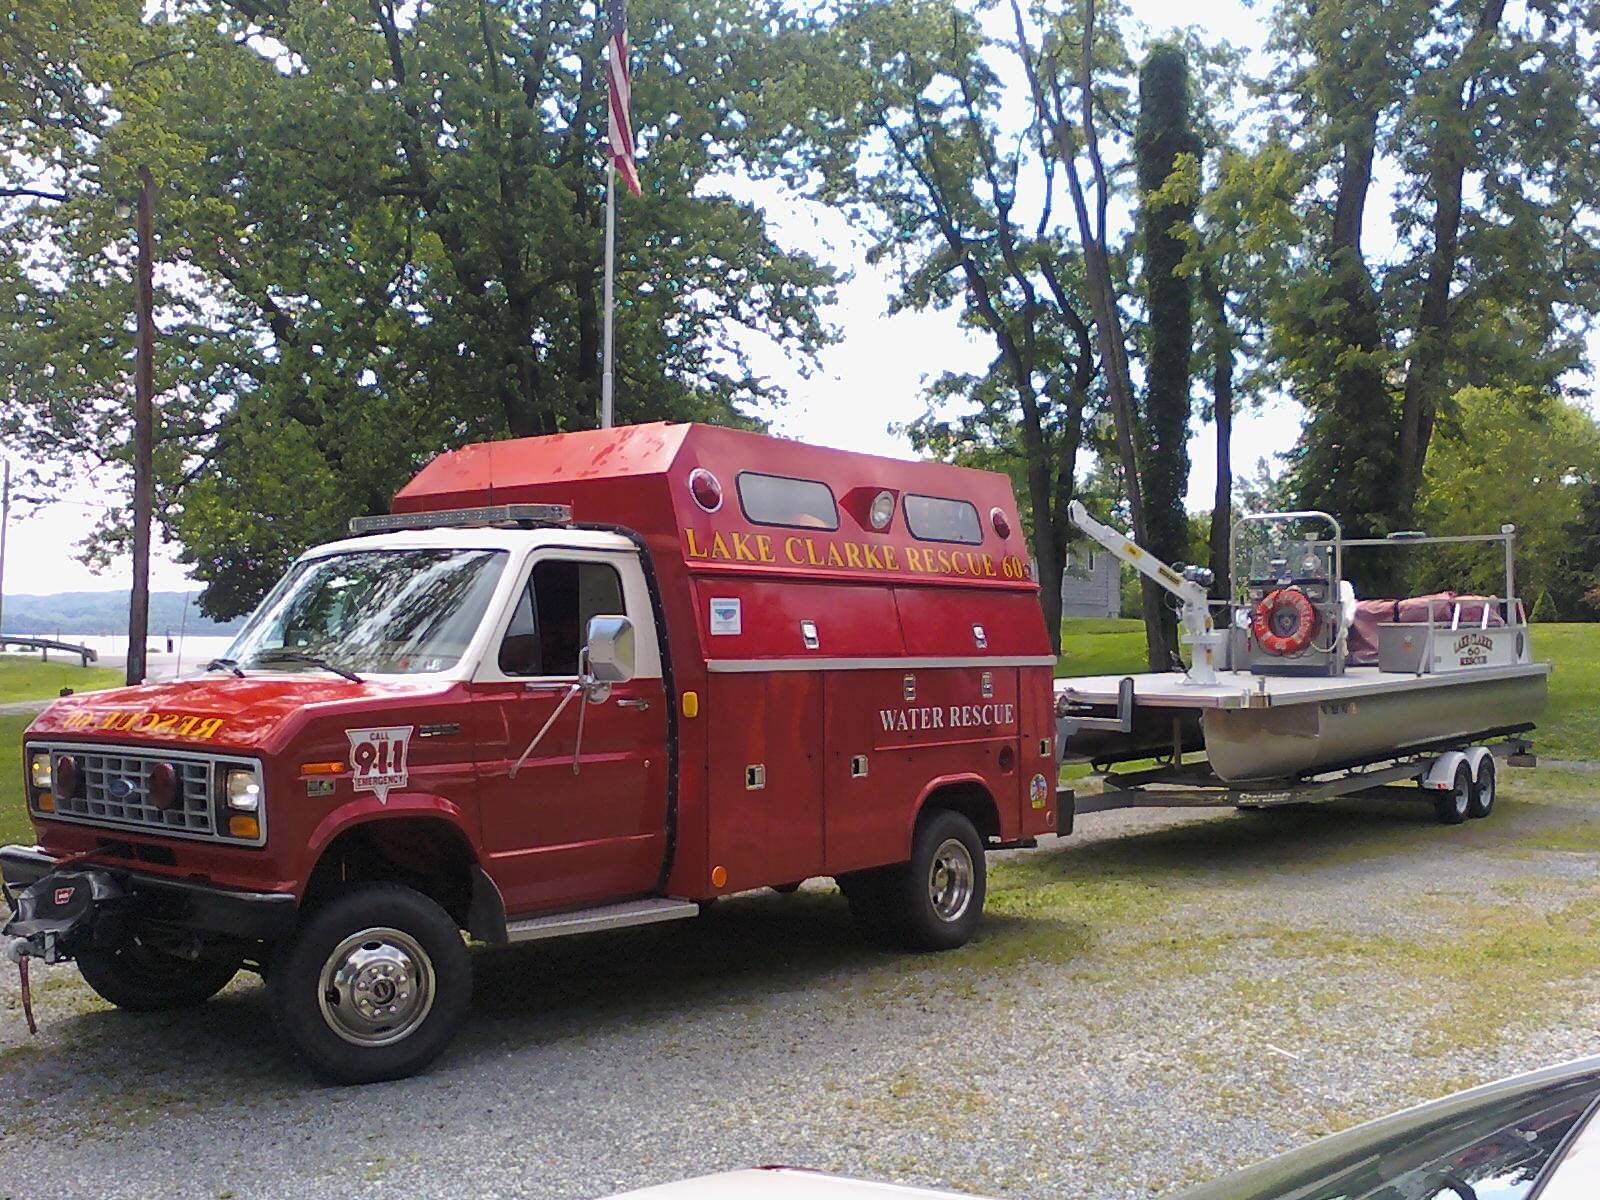 Rescue 60 and Boat 602